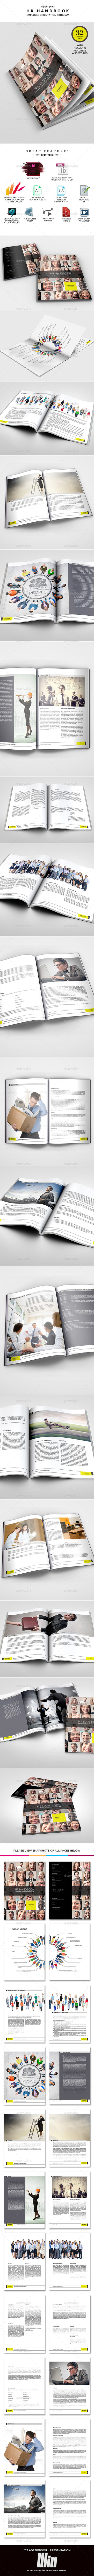 HR and Employee Handbook by designsmill | GraphicRiver